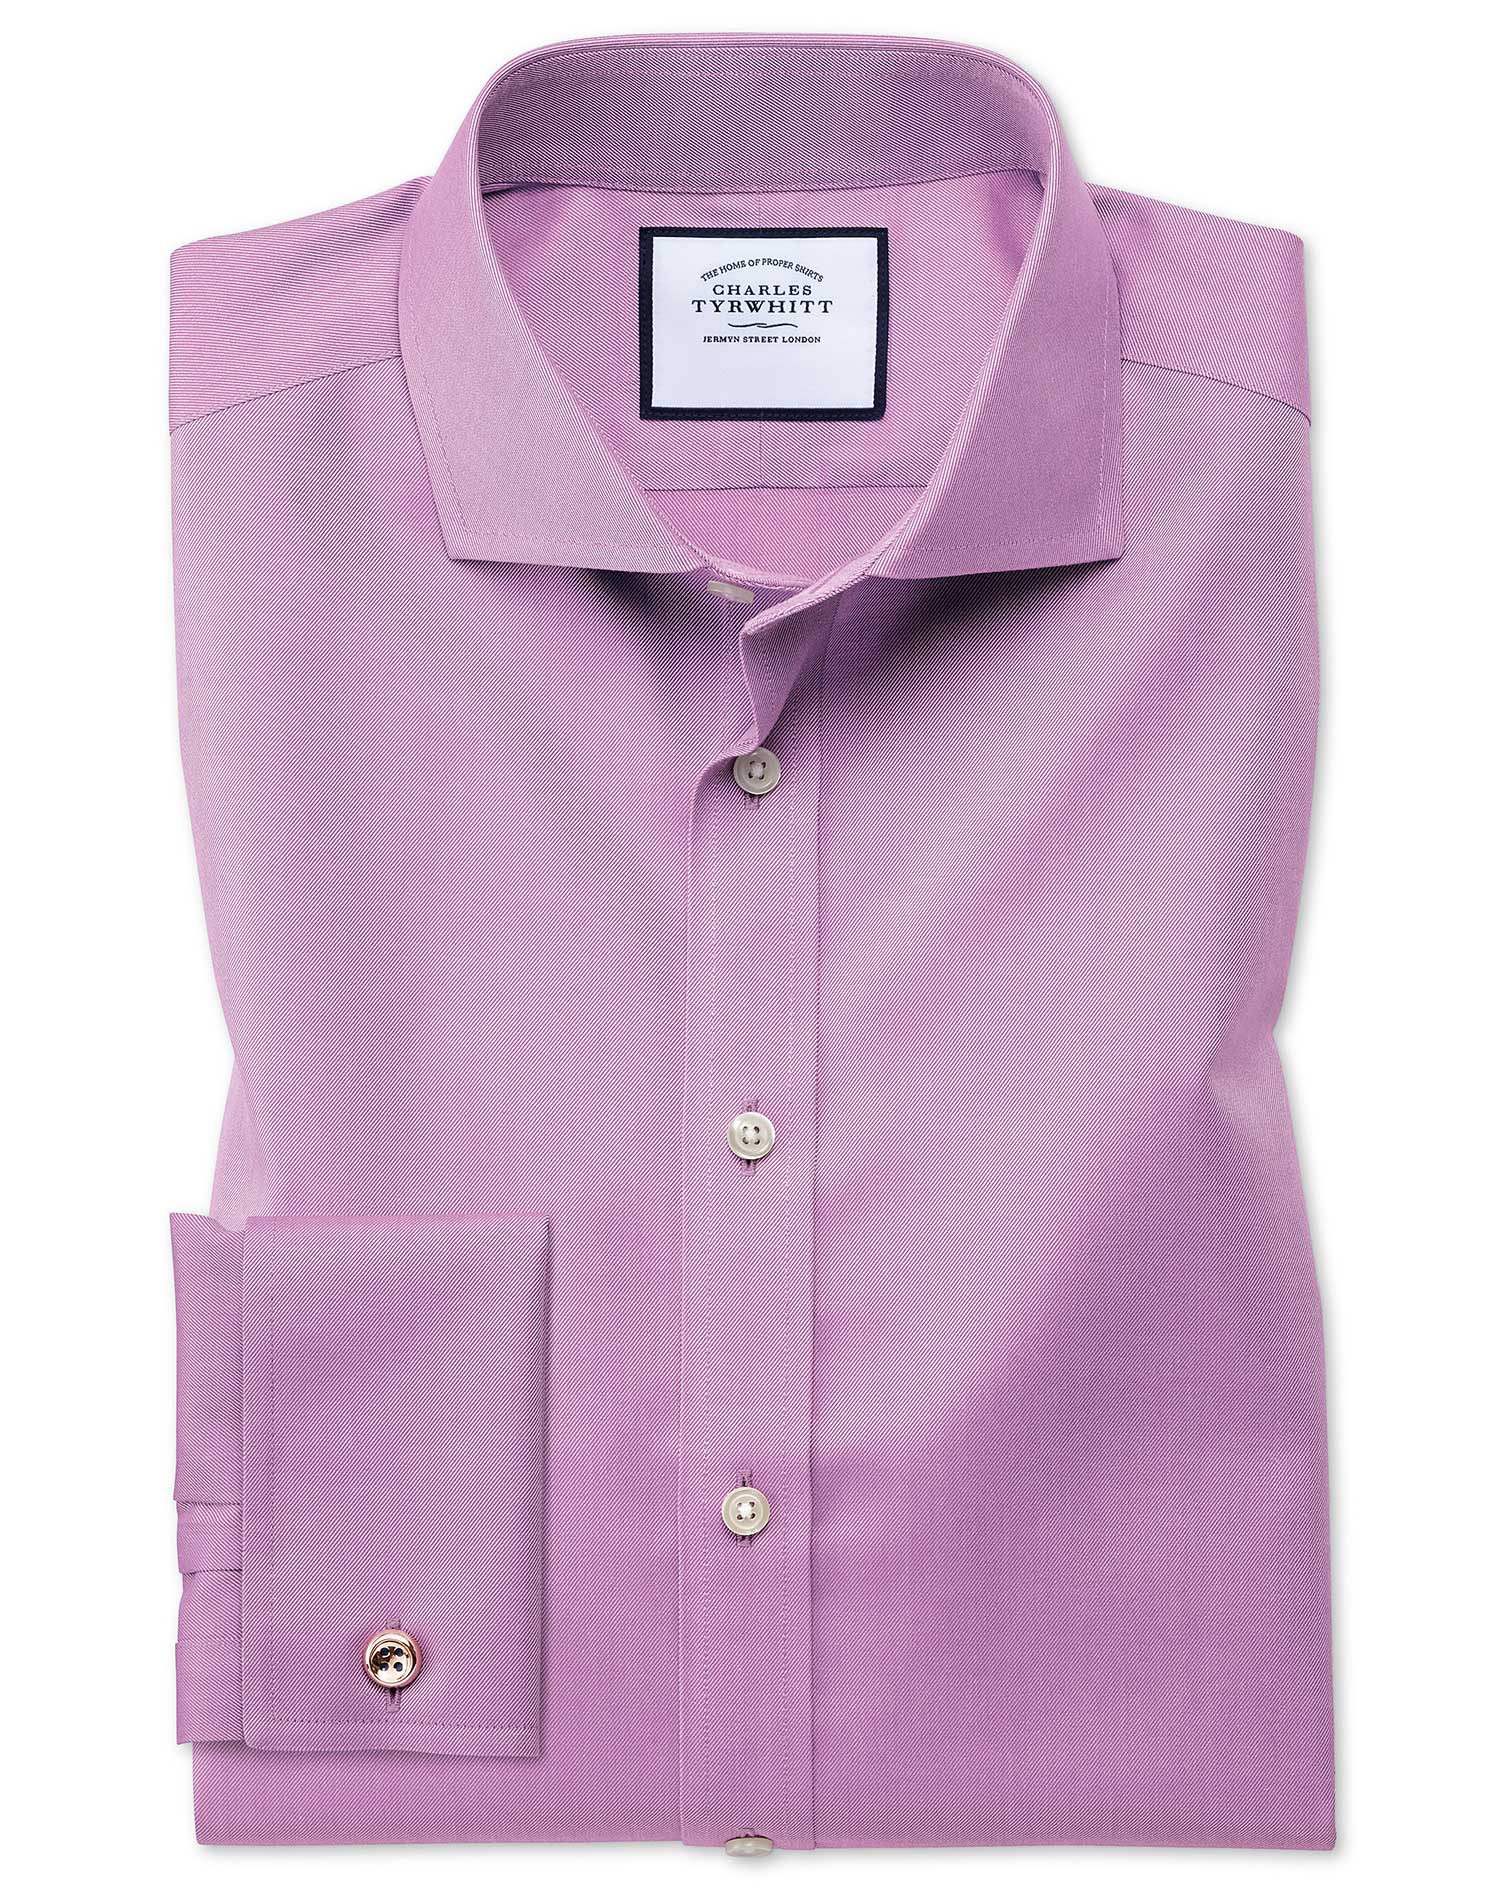 Slim Fit Cutaway Collar Non-Iron Twill Violet Cotton Formal Shirt Double Cuff Size 16/35 by Charles